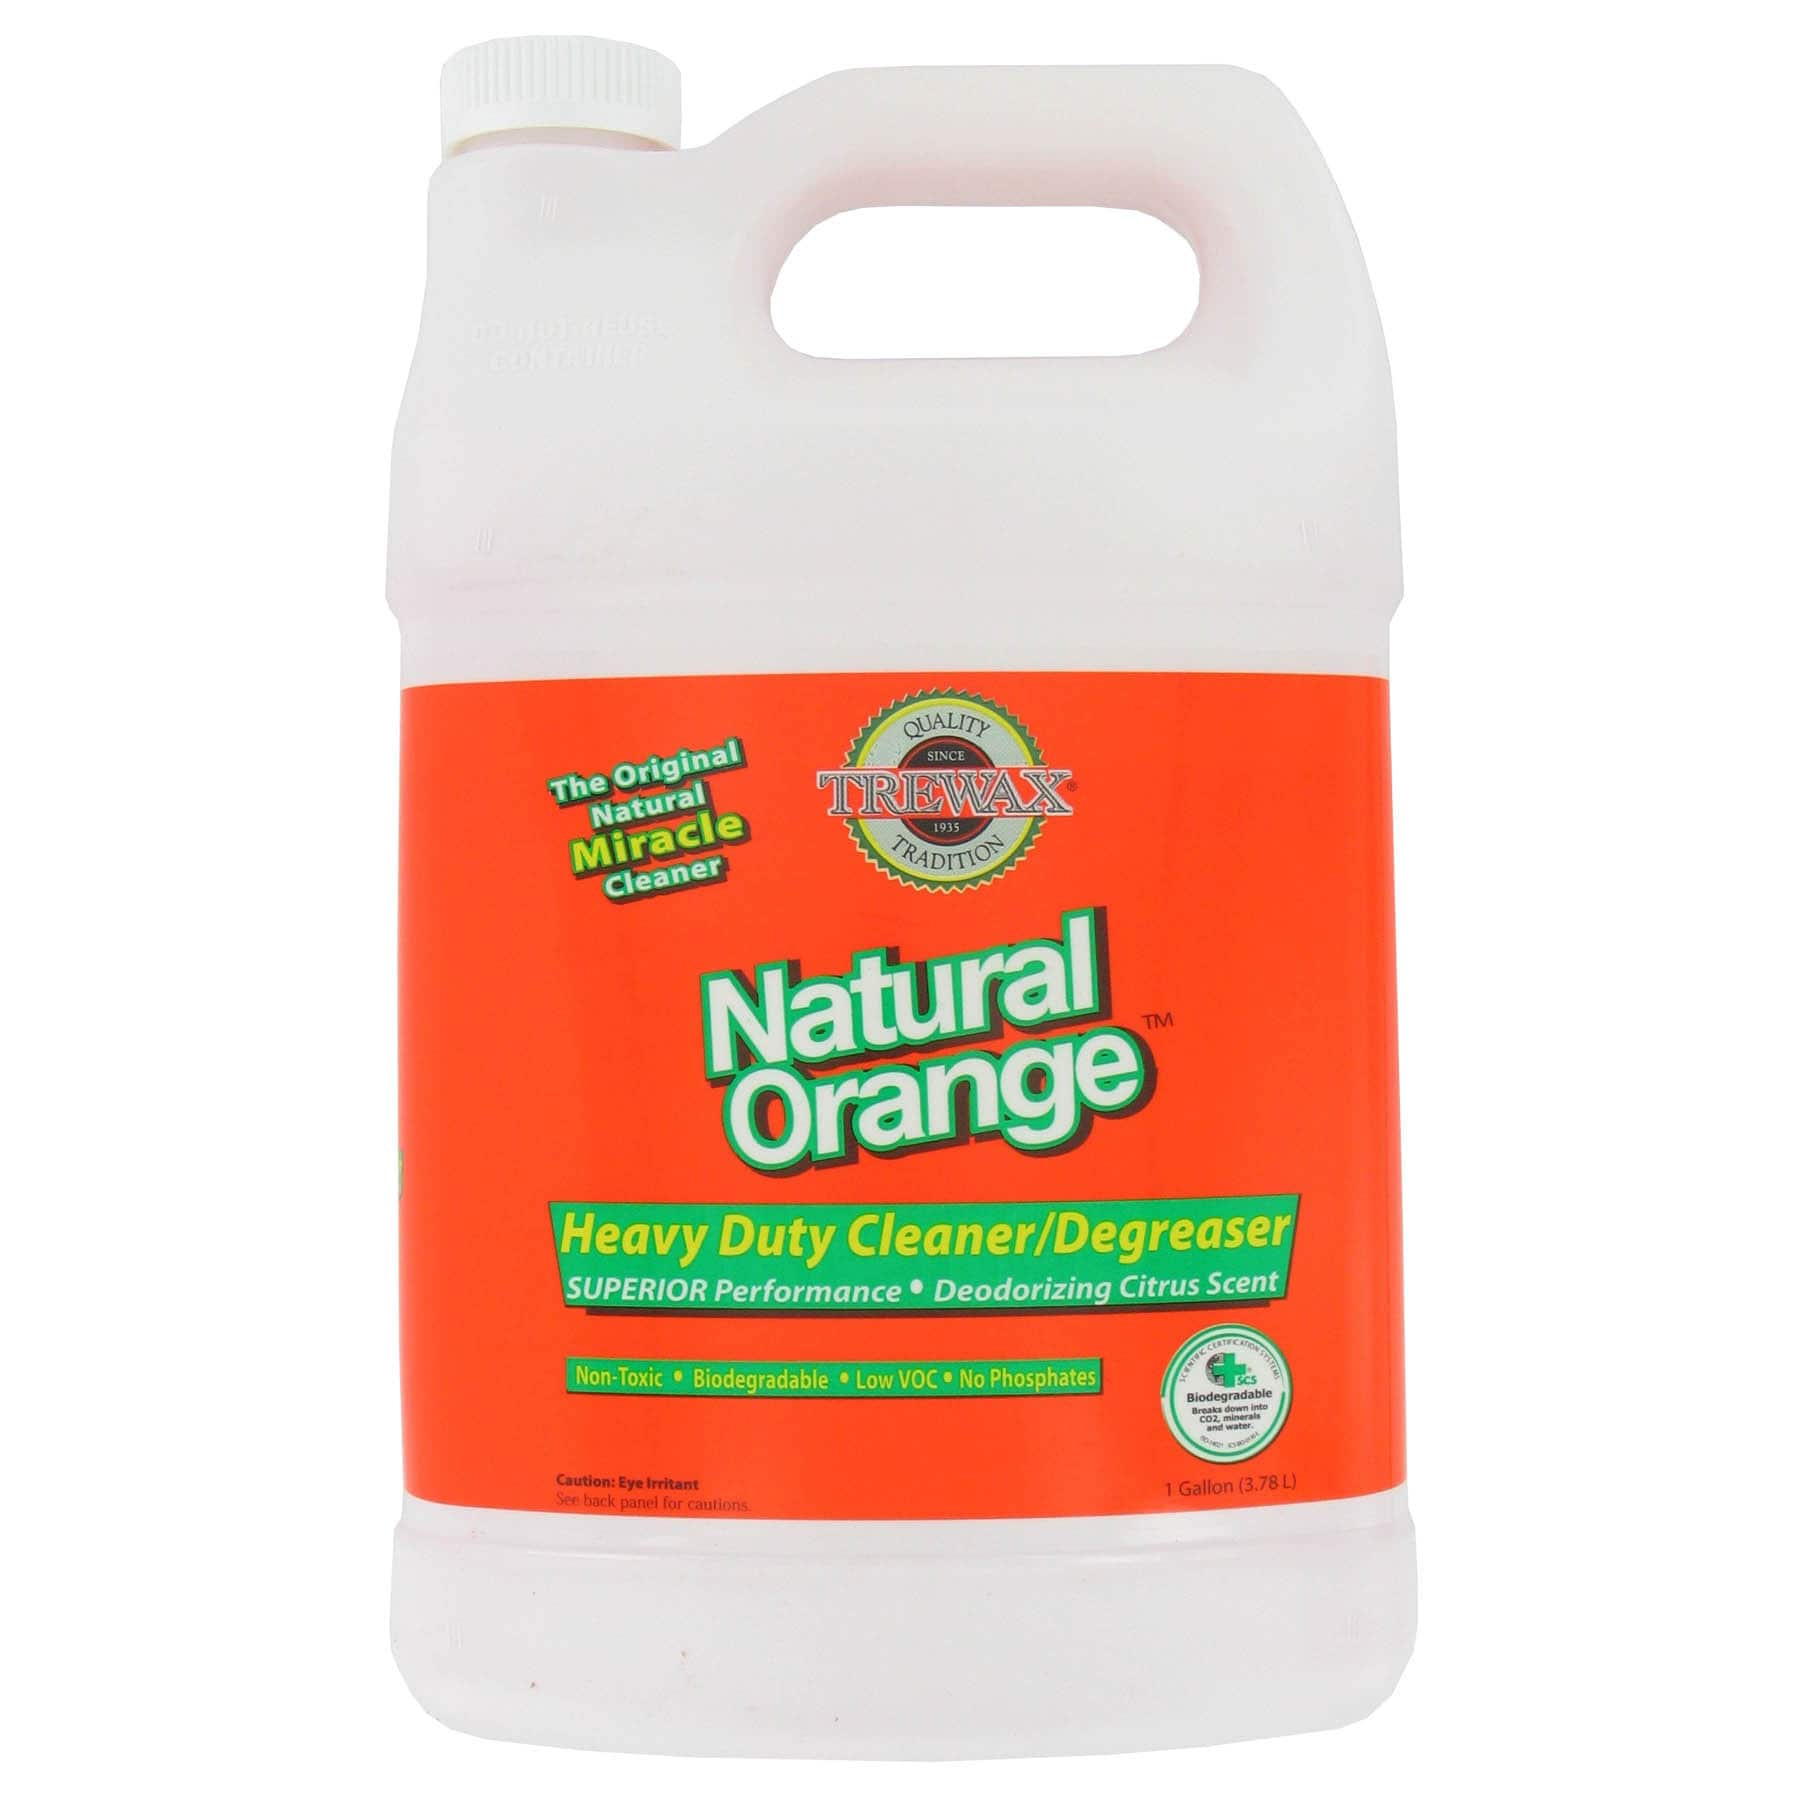 Citrus Magic Heavy Duty Cleaner and Degreaser, 1 Gallon